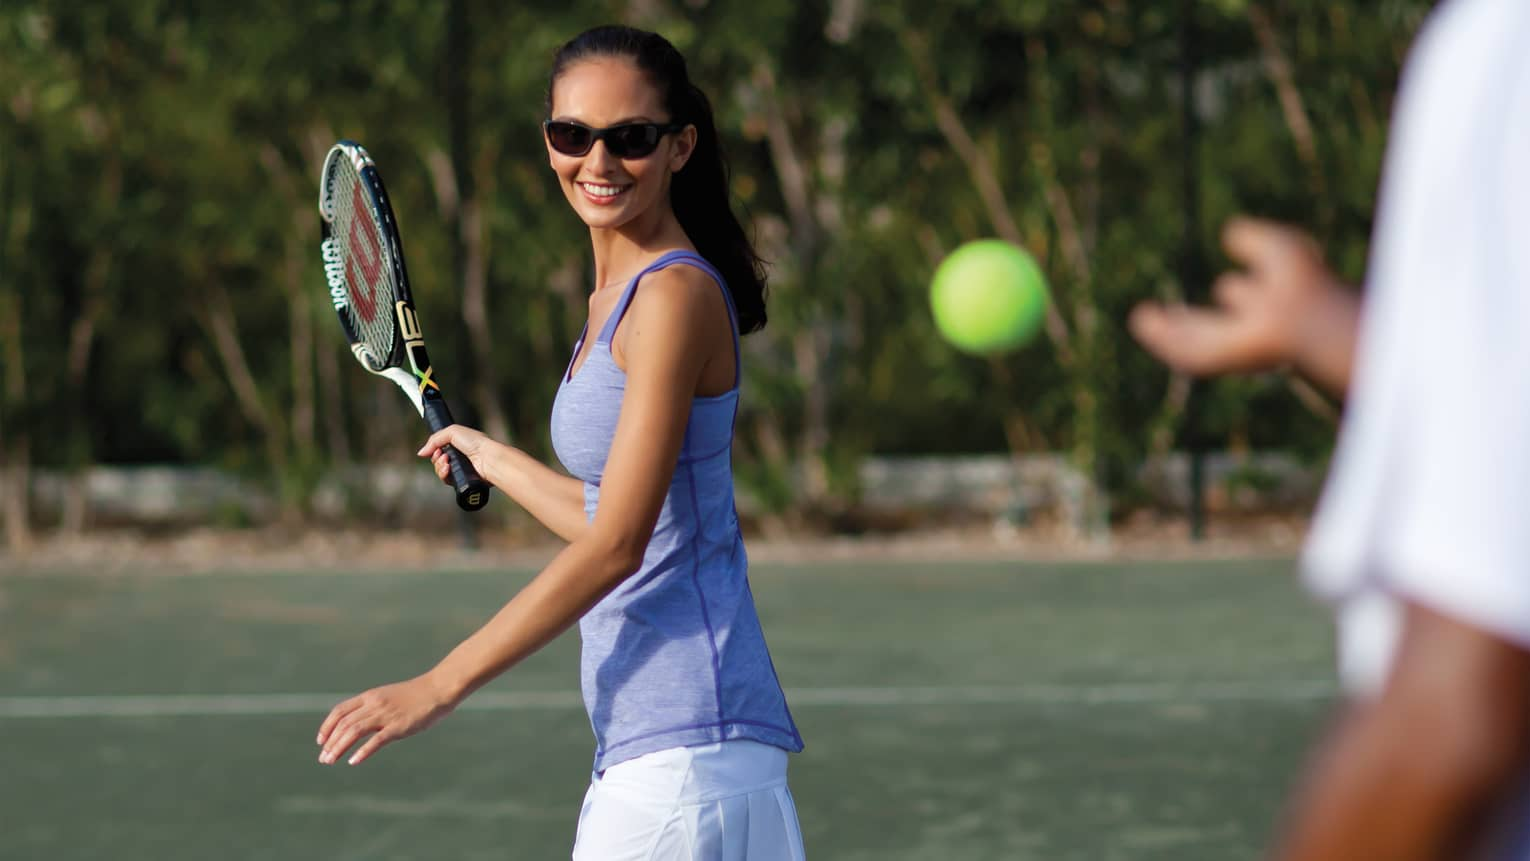 Woman in sunglasses and swings tennis racket as tennis ball approaches